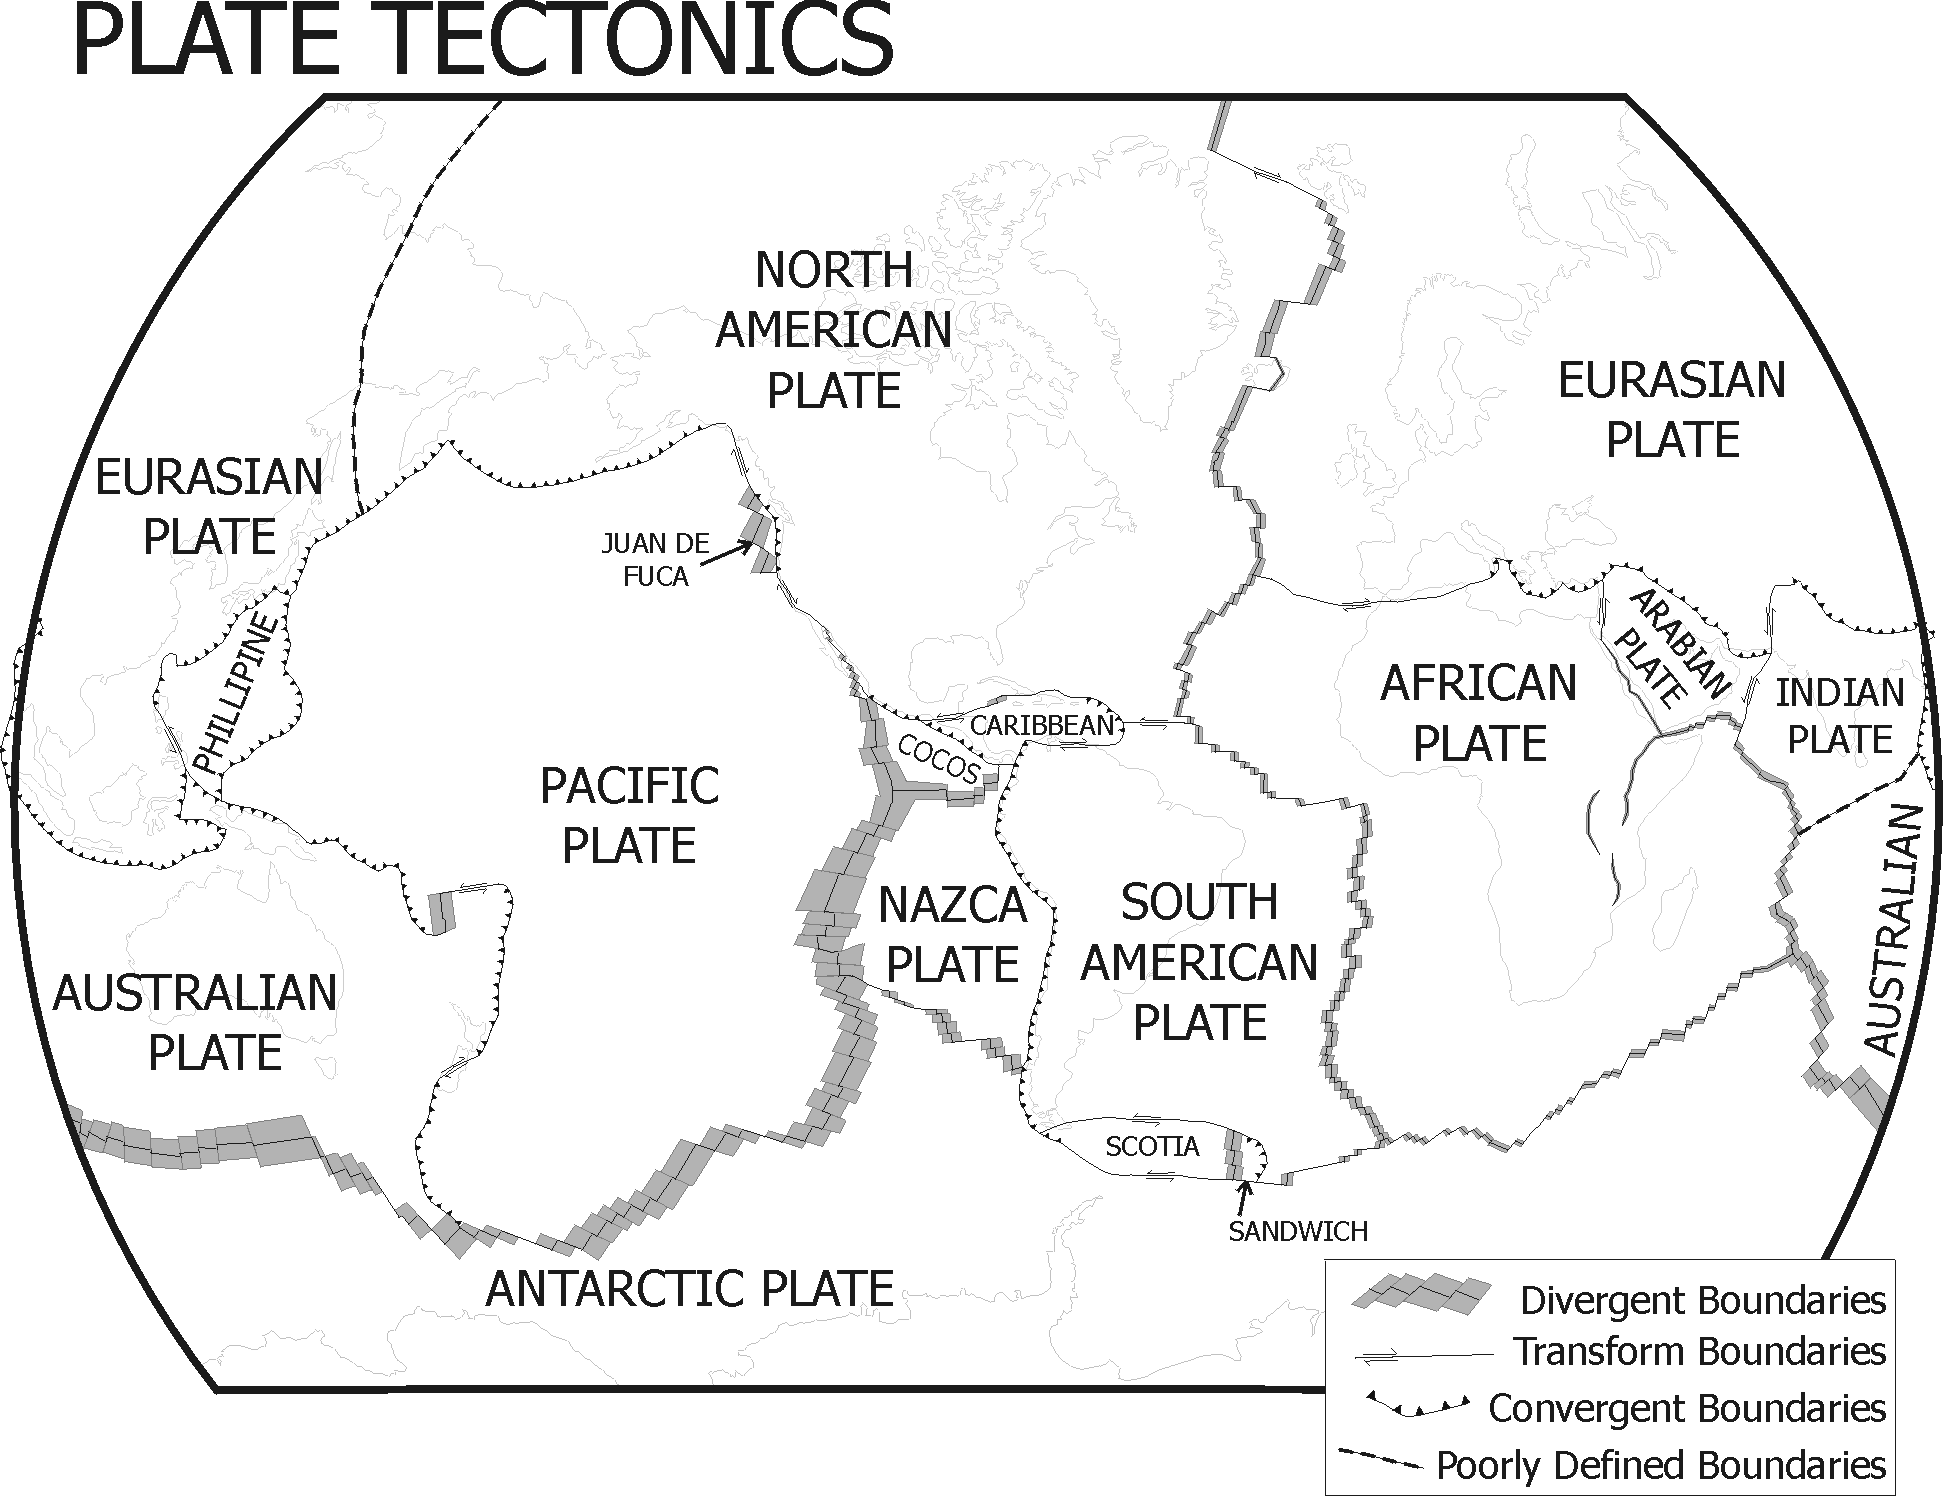 plate tectonics essay The plate tectonics theory this essay the plate tectonics theory and other 63,000+ term papers, college essay examples and free essays are available now on reviewessayscom.